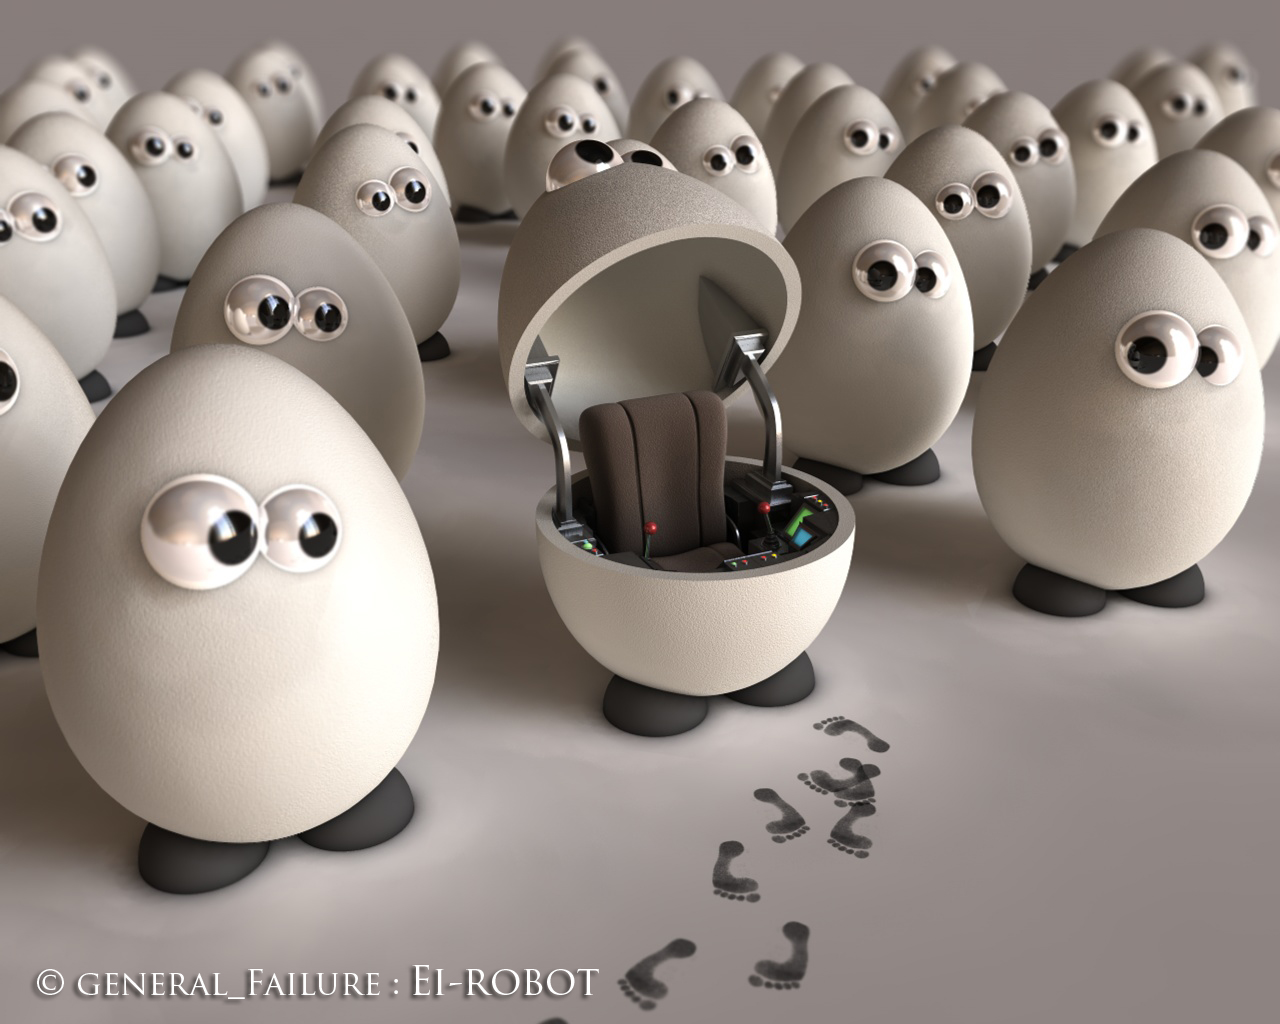 Cute Funny 3d Cartoon Wallpapers for Desktop background 1280x1024